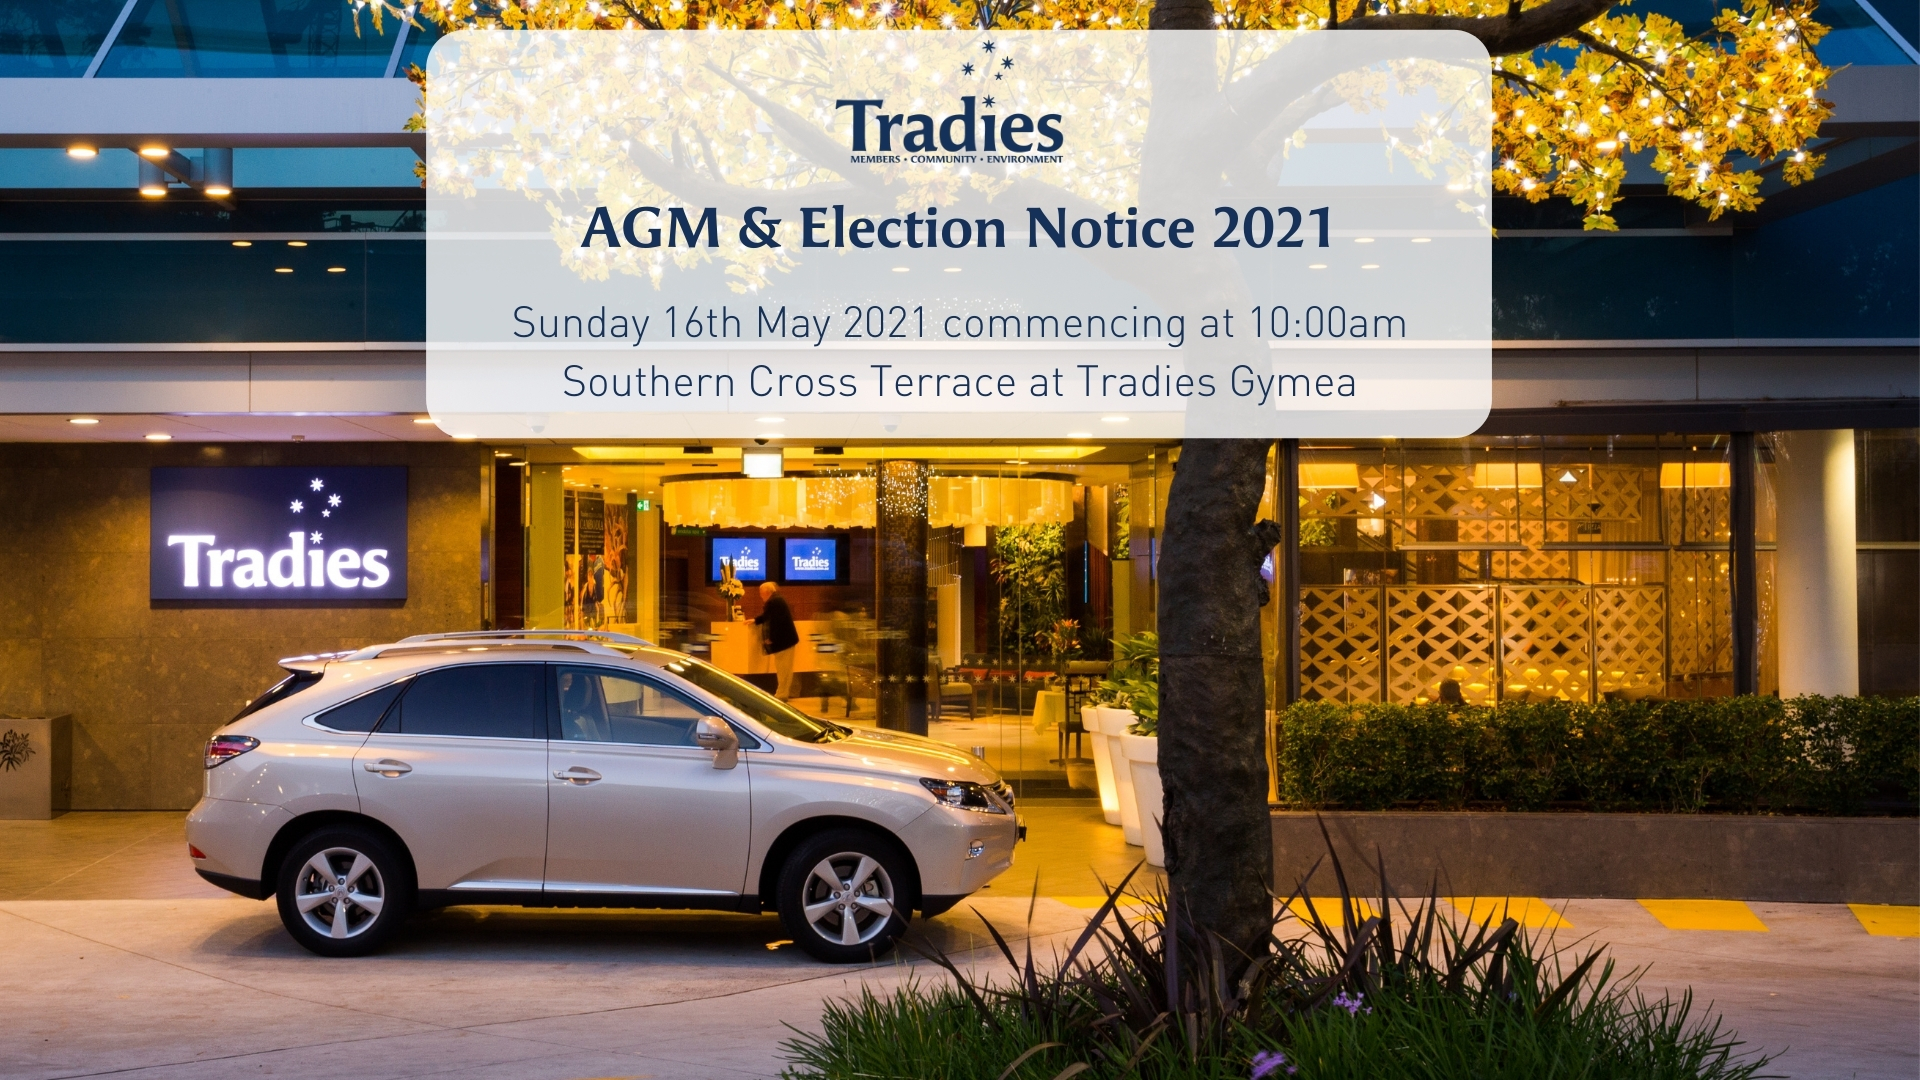 Tradies annual general meeting will be held on the 16th of may 2021 commencing at 10am at Tradies Gymea